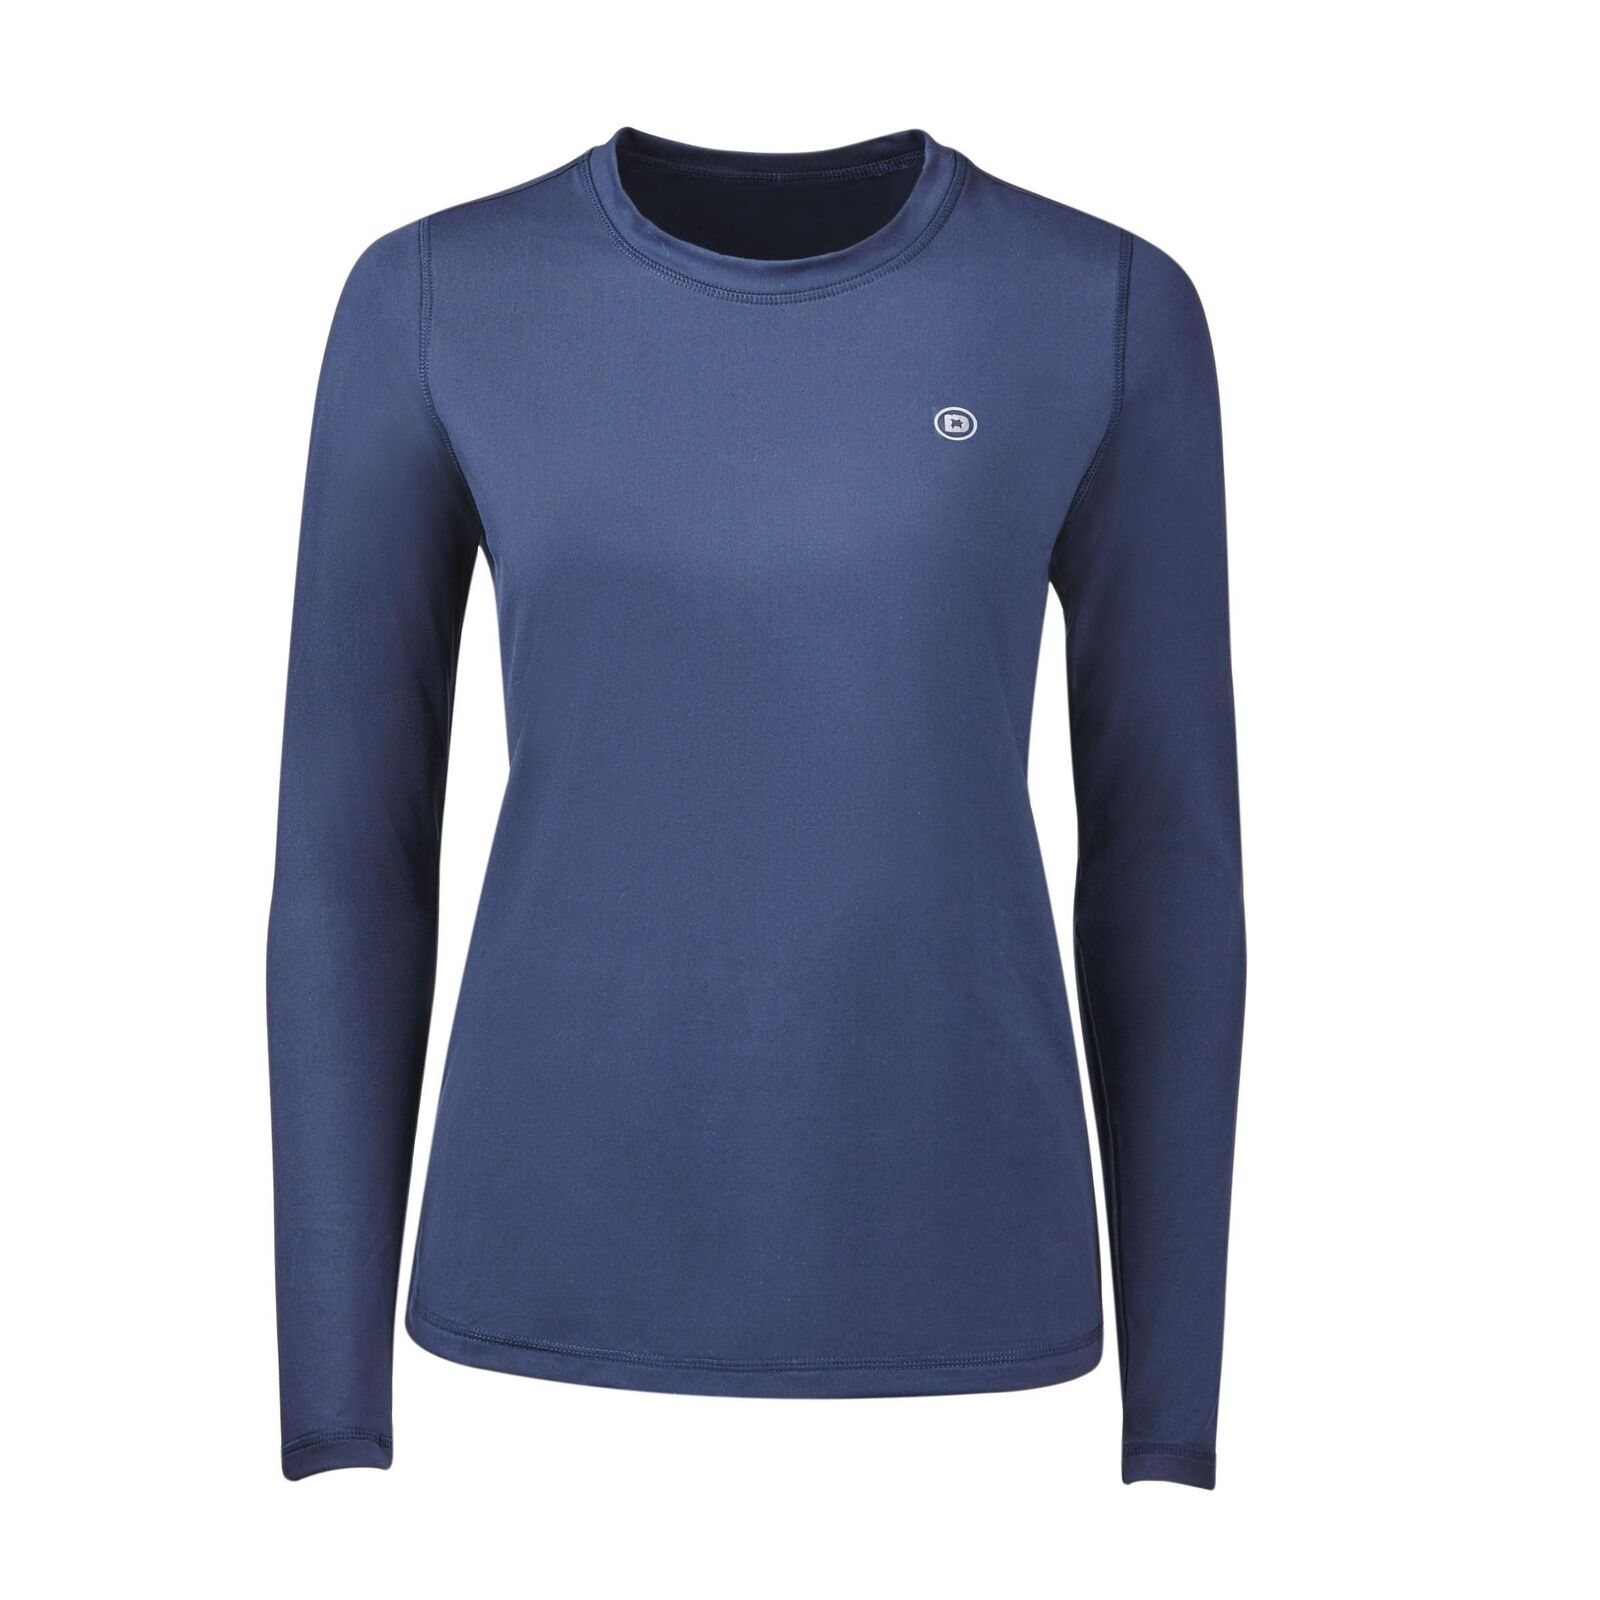 Dublin Pearl Long Sleeve Technical Horse Riding Top Technical brushed fabric. A